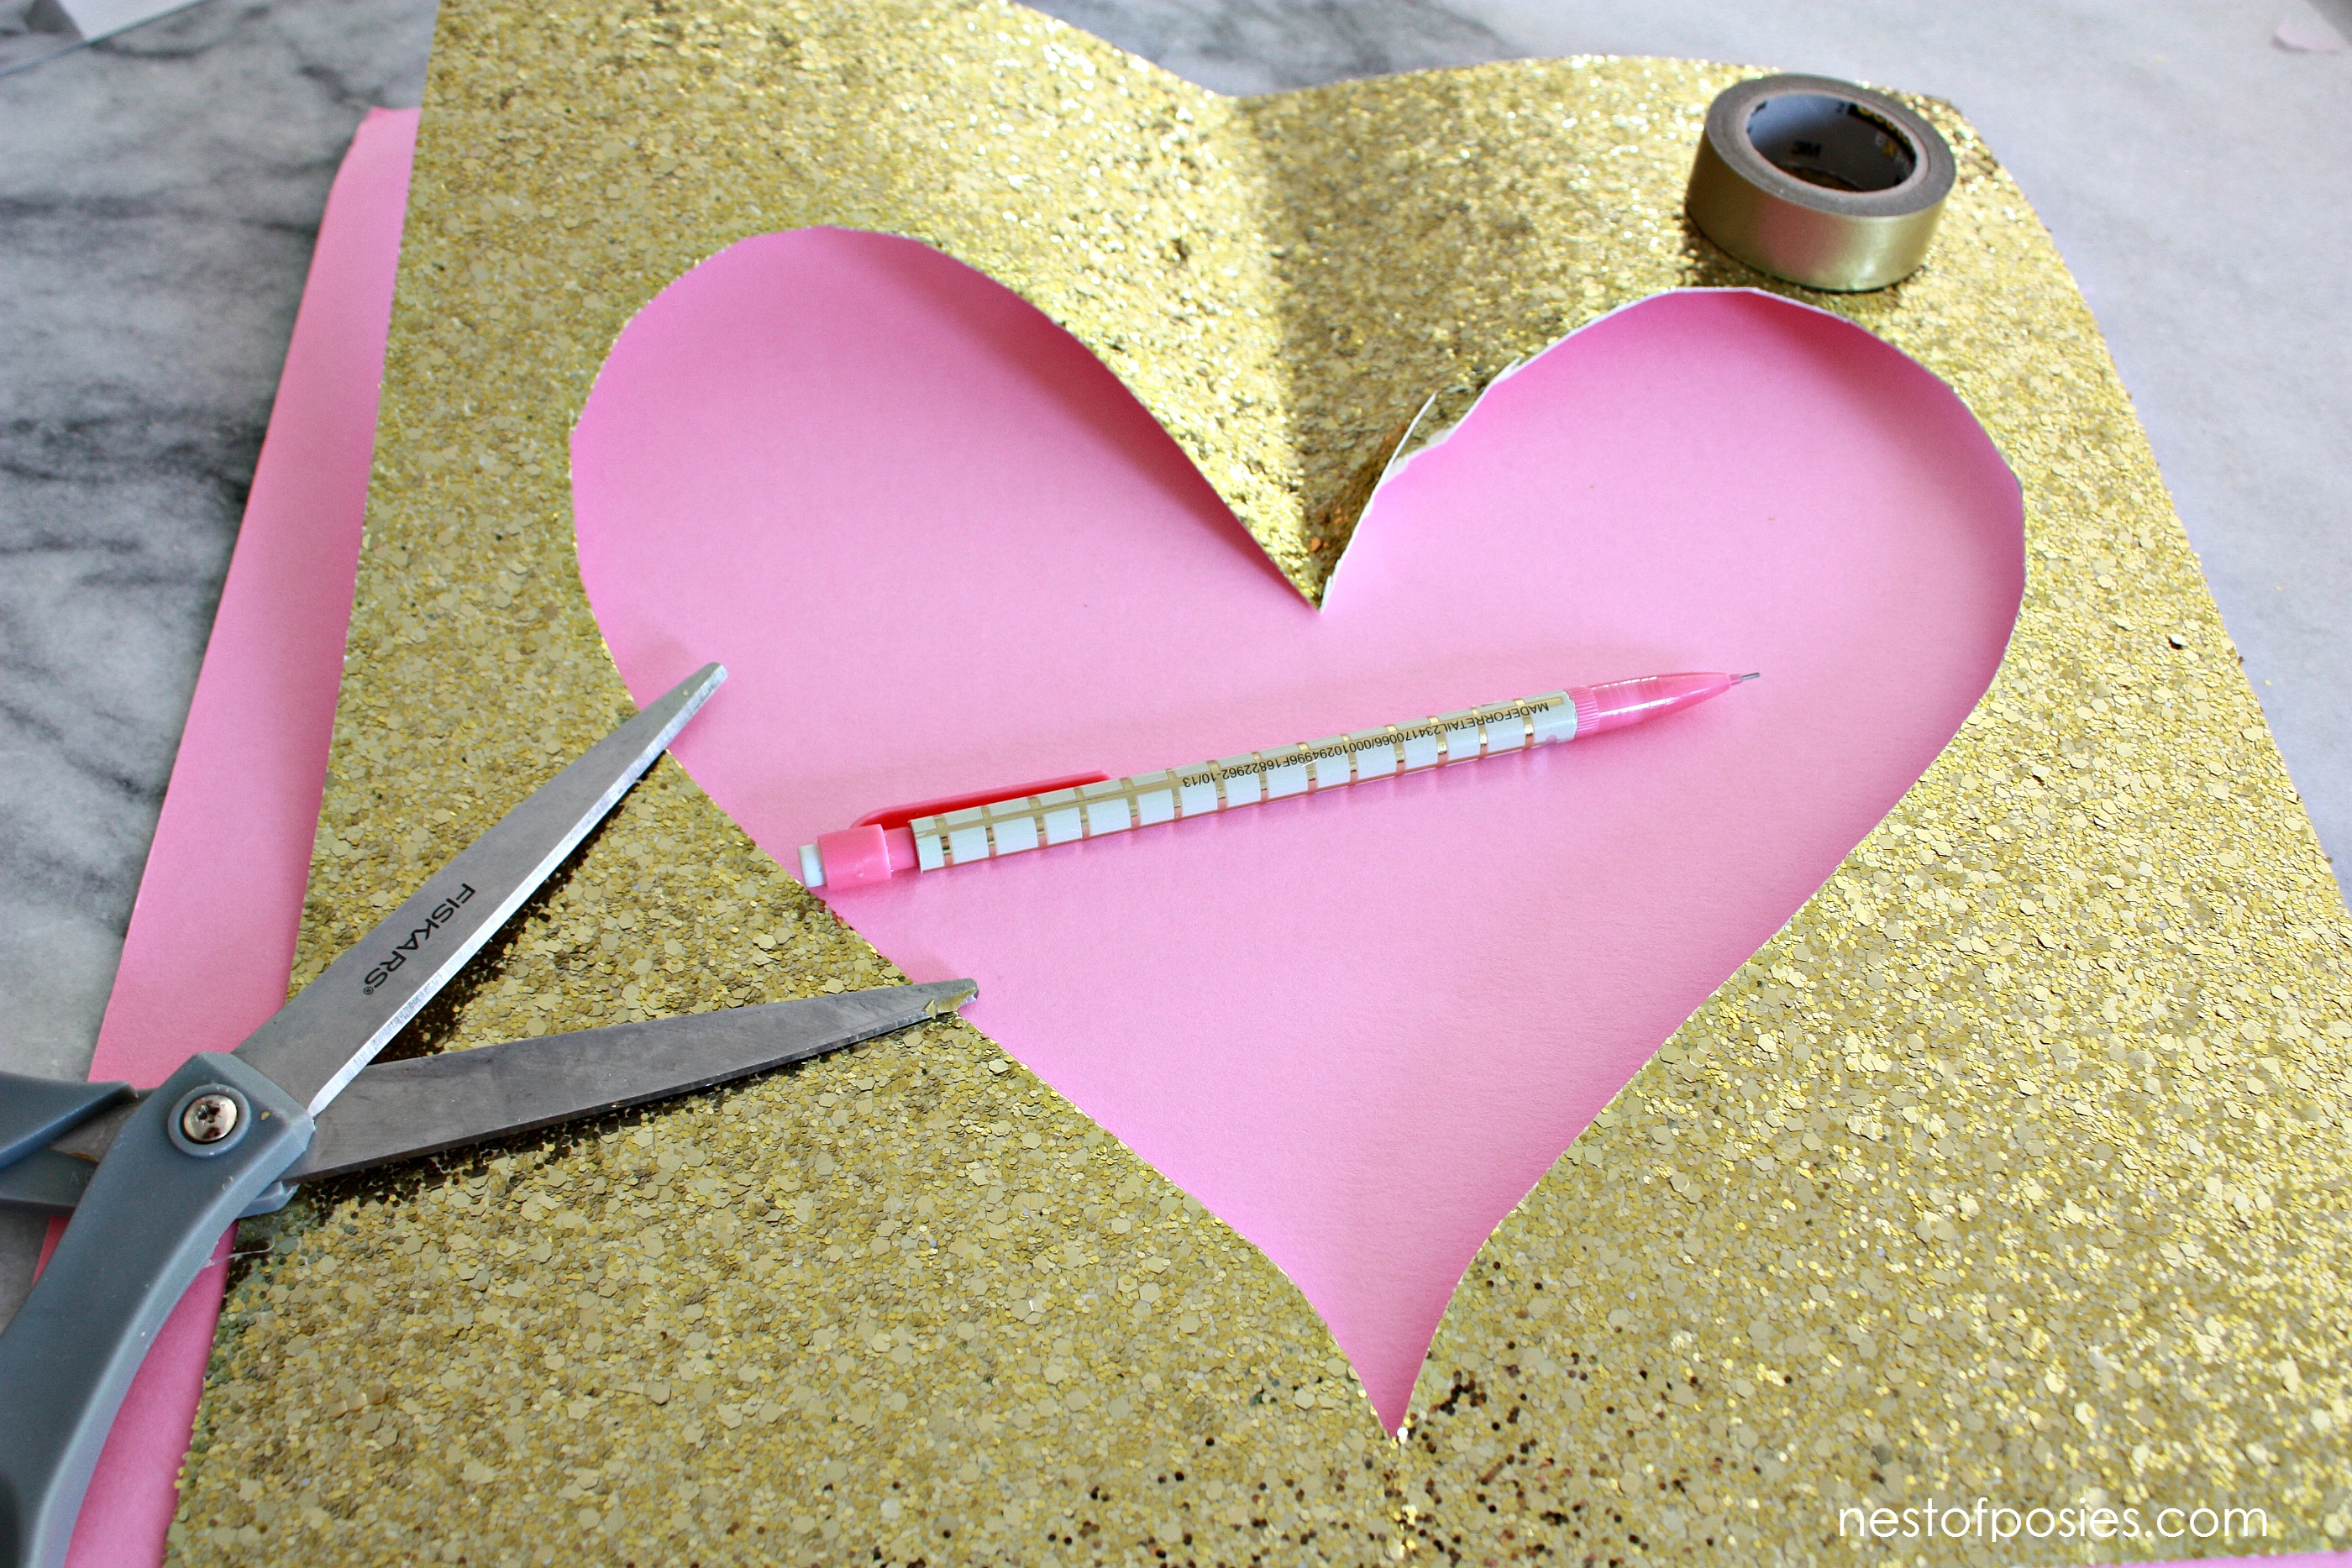 How to scrapbook with glitter paper - Use Glitter Paper To Cut And Layer A Heart For An Added Touch Of Sparkle